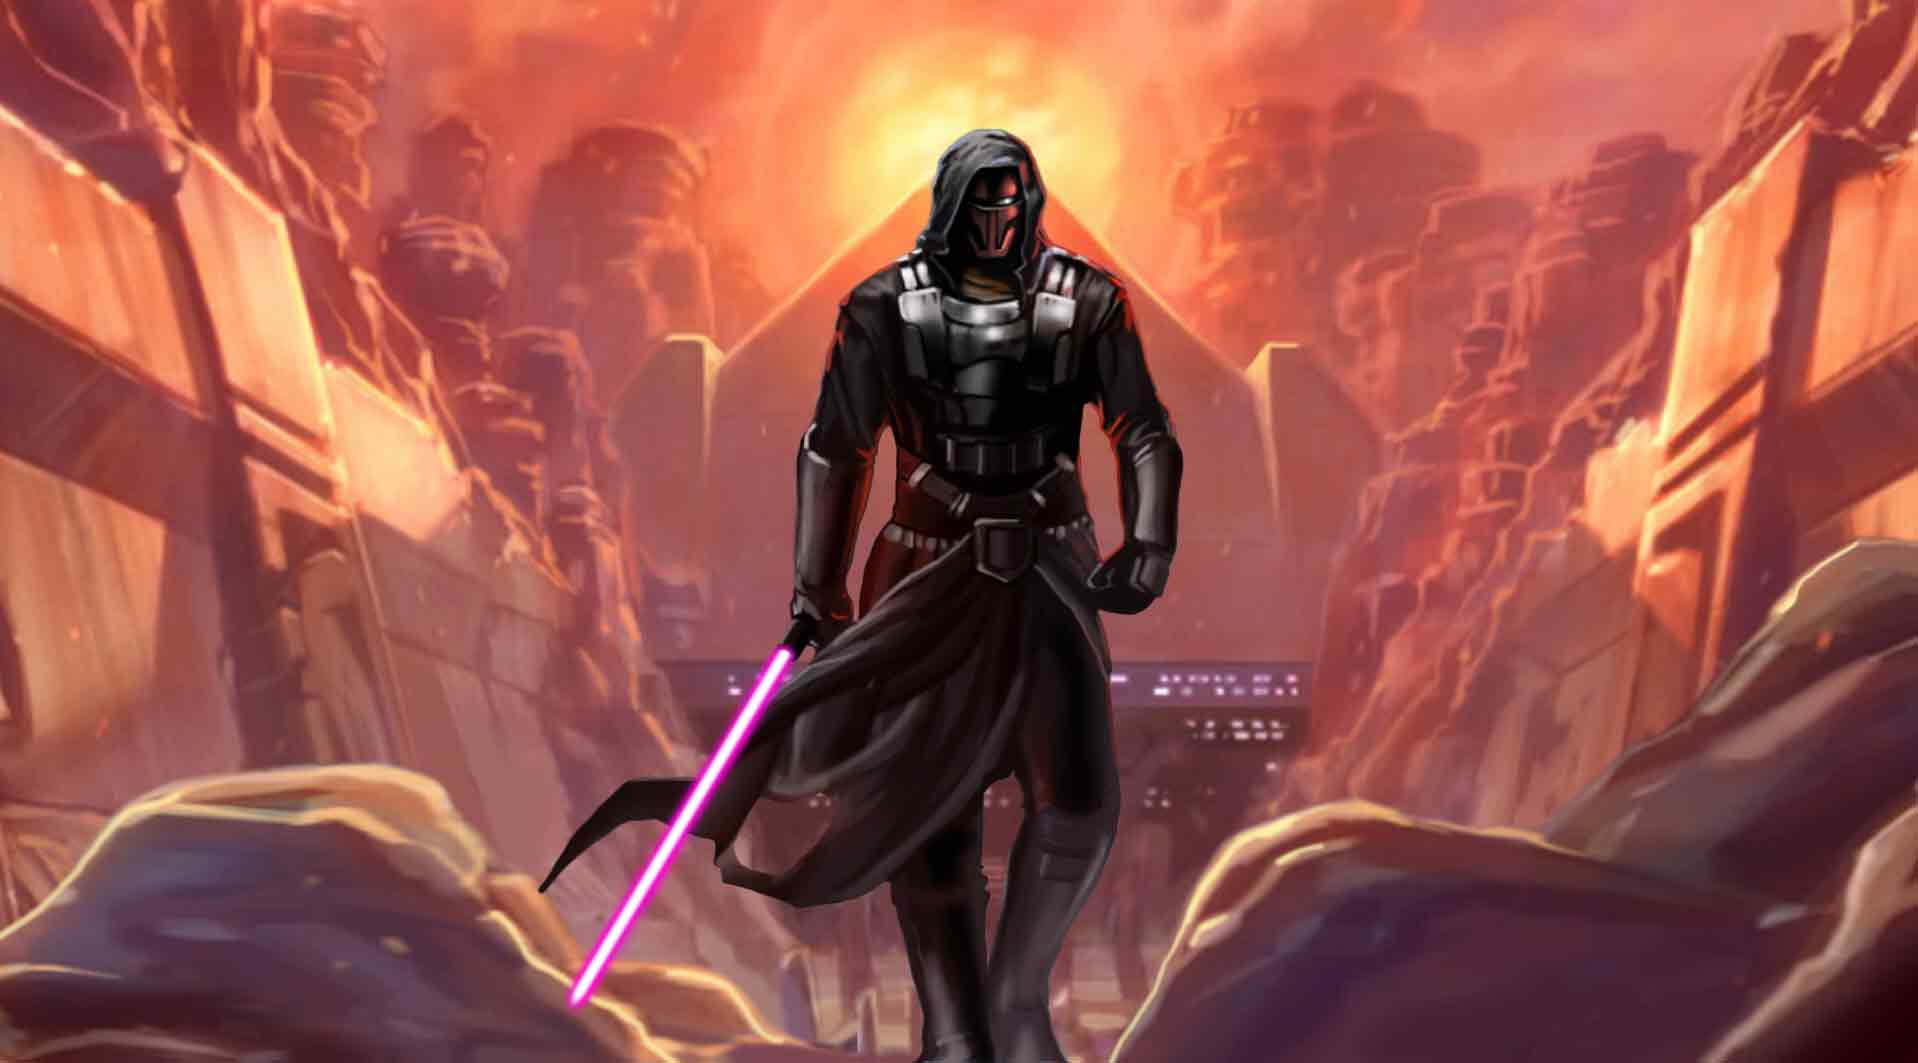 Wallpapers   The Old Republic wallpaper Revan wallpaper 1918x1063